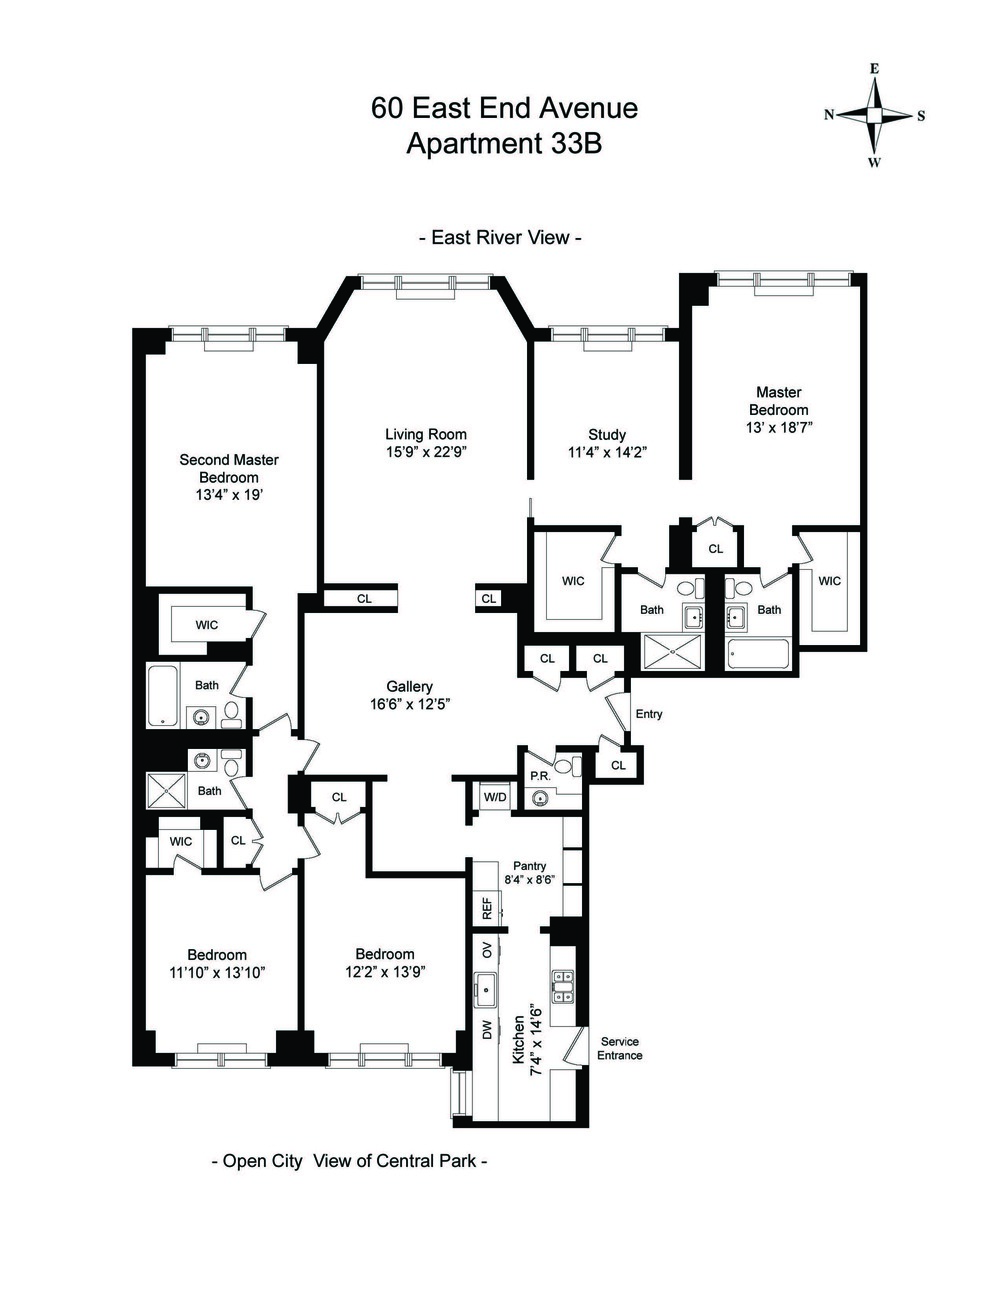 Floor Plan - 60 East End Avenue 33B.jpg